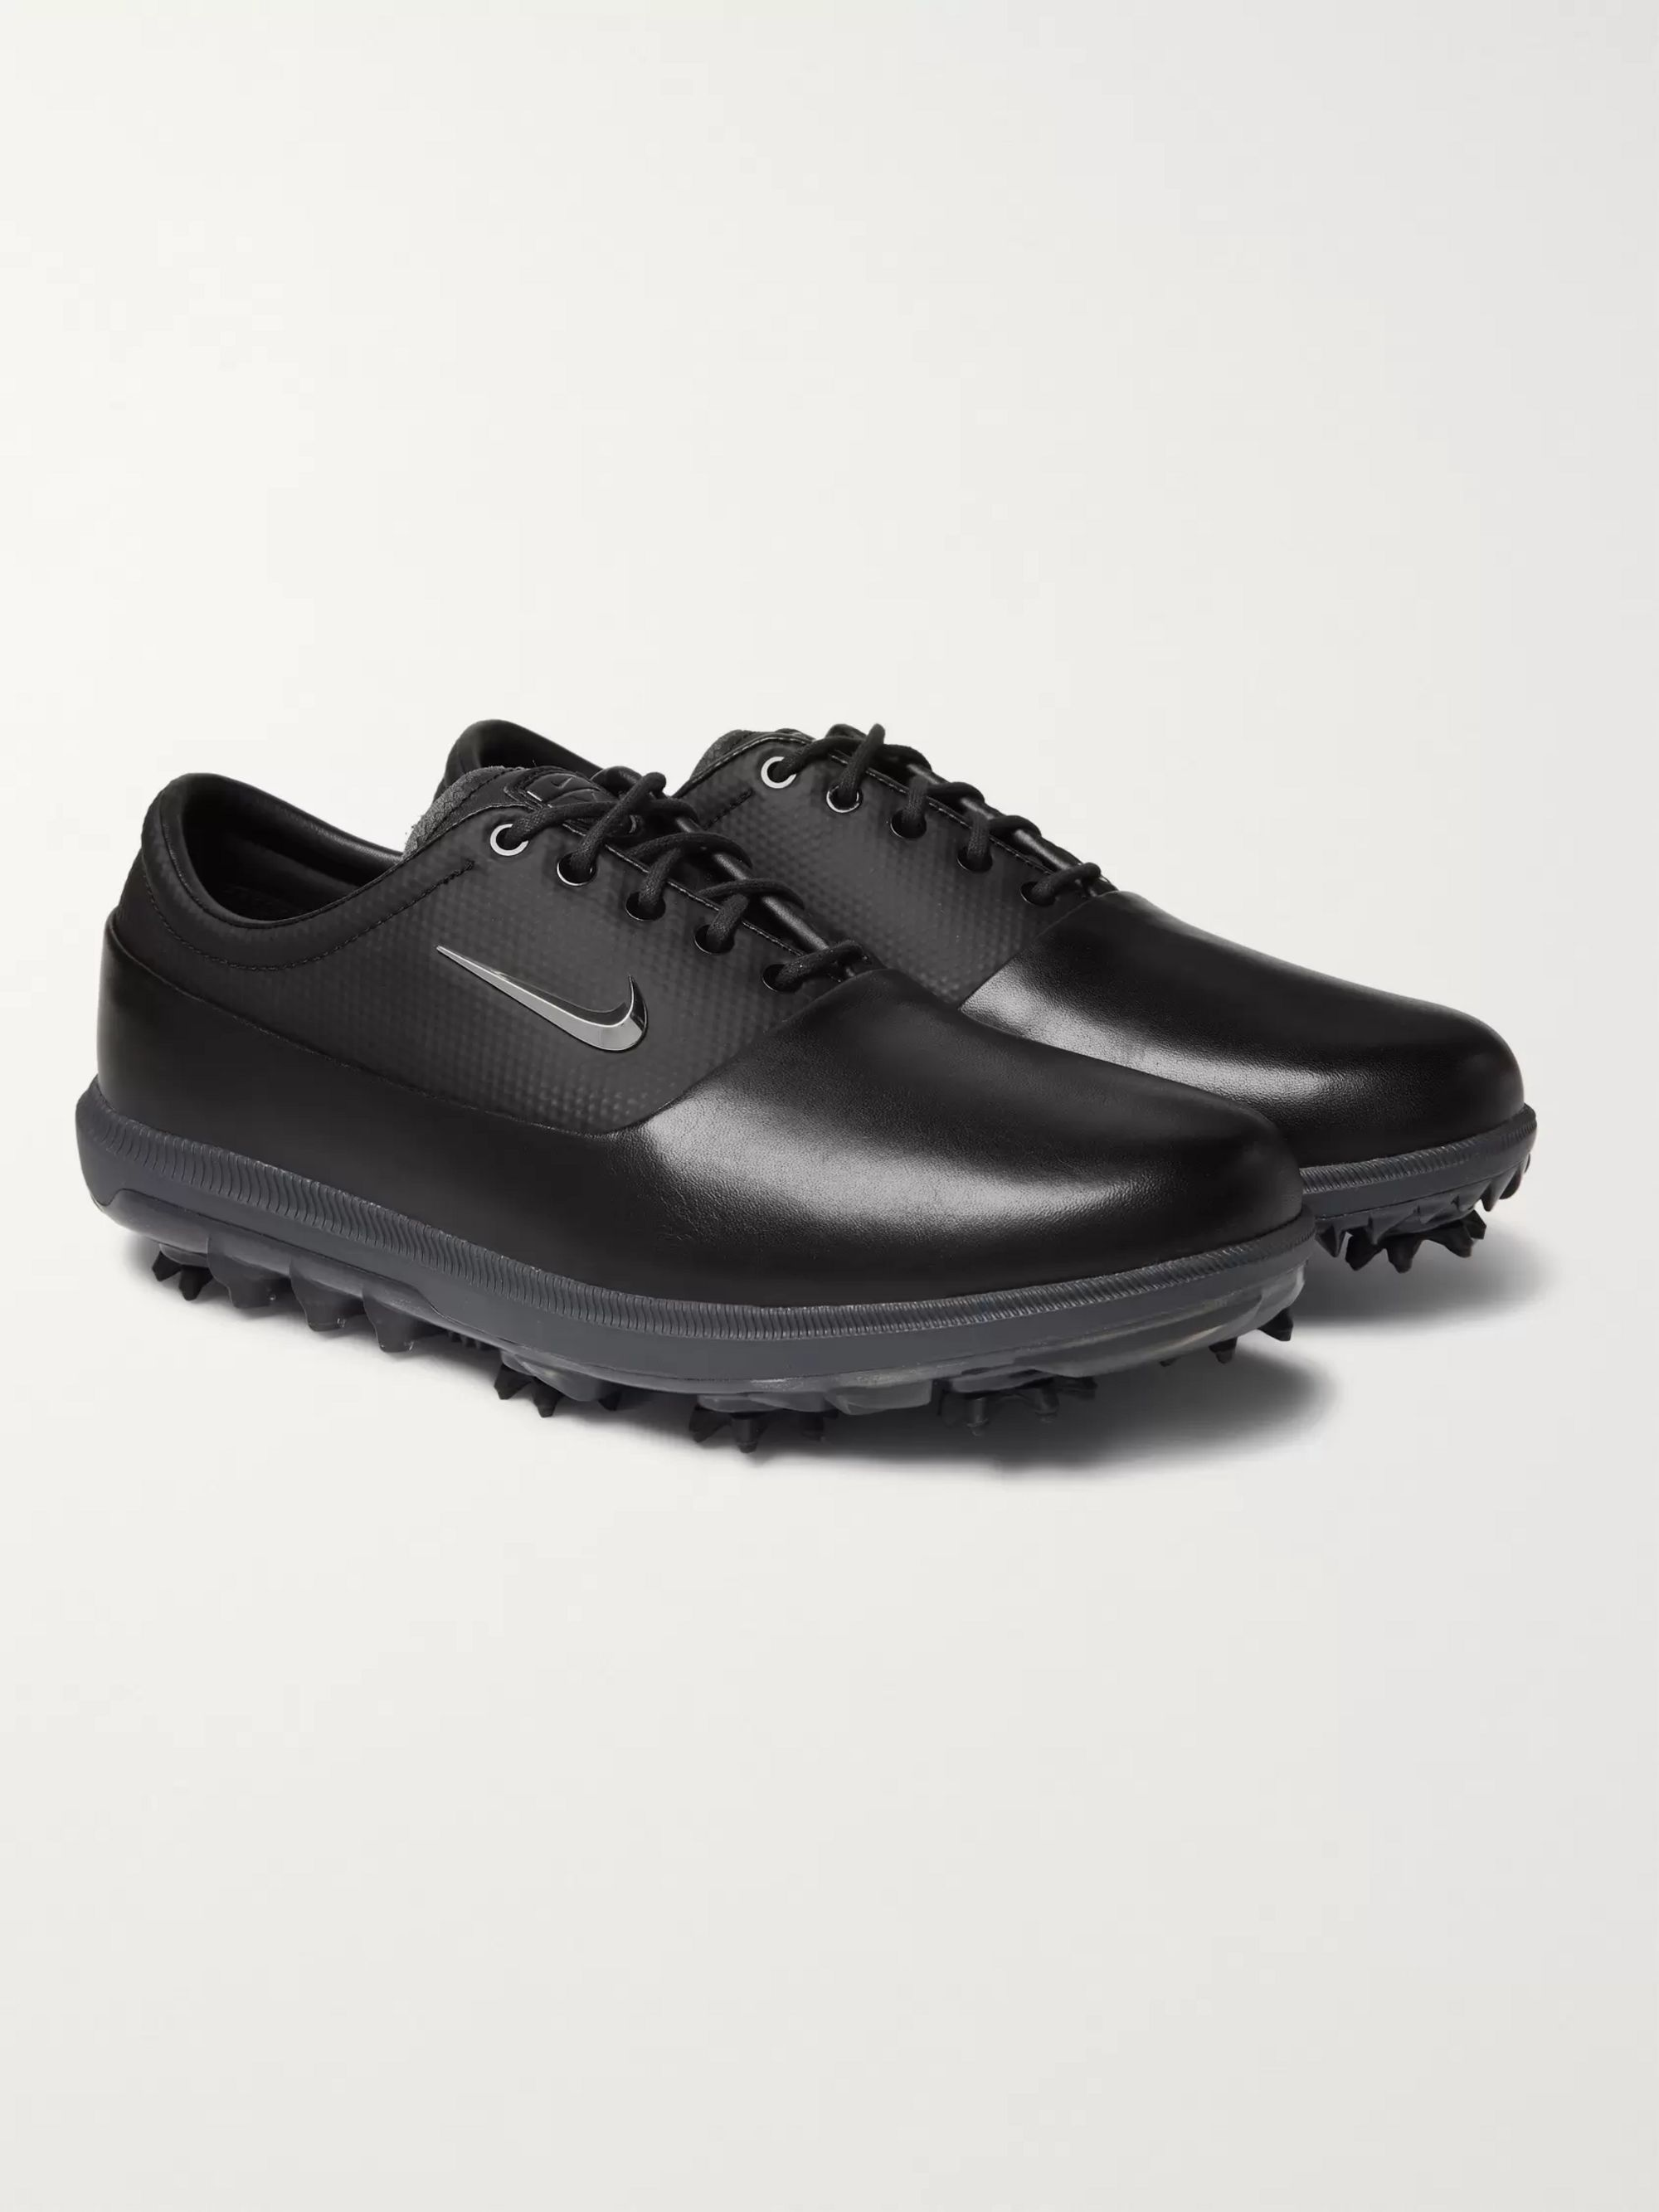 Nike Golf Air Zoom Victory Leather Golfing Shoes